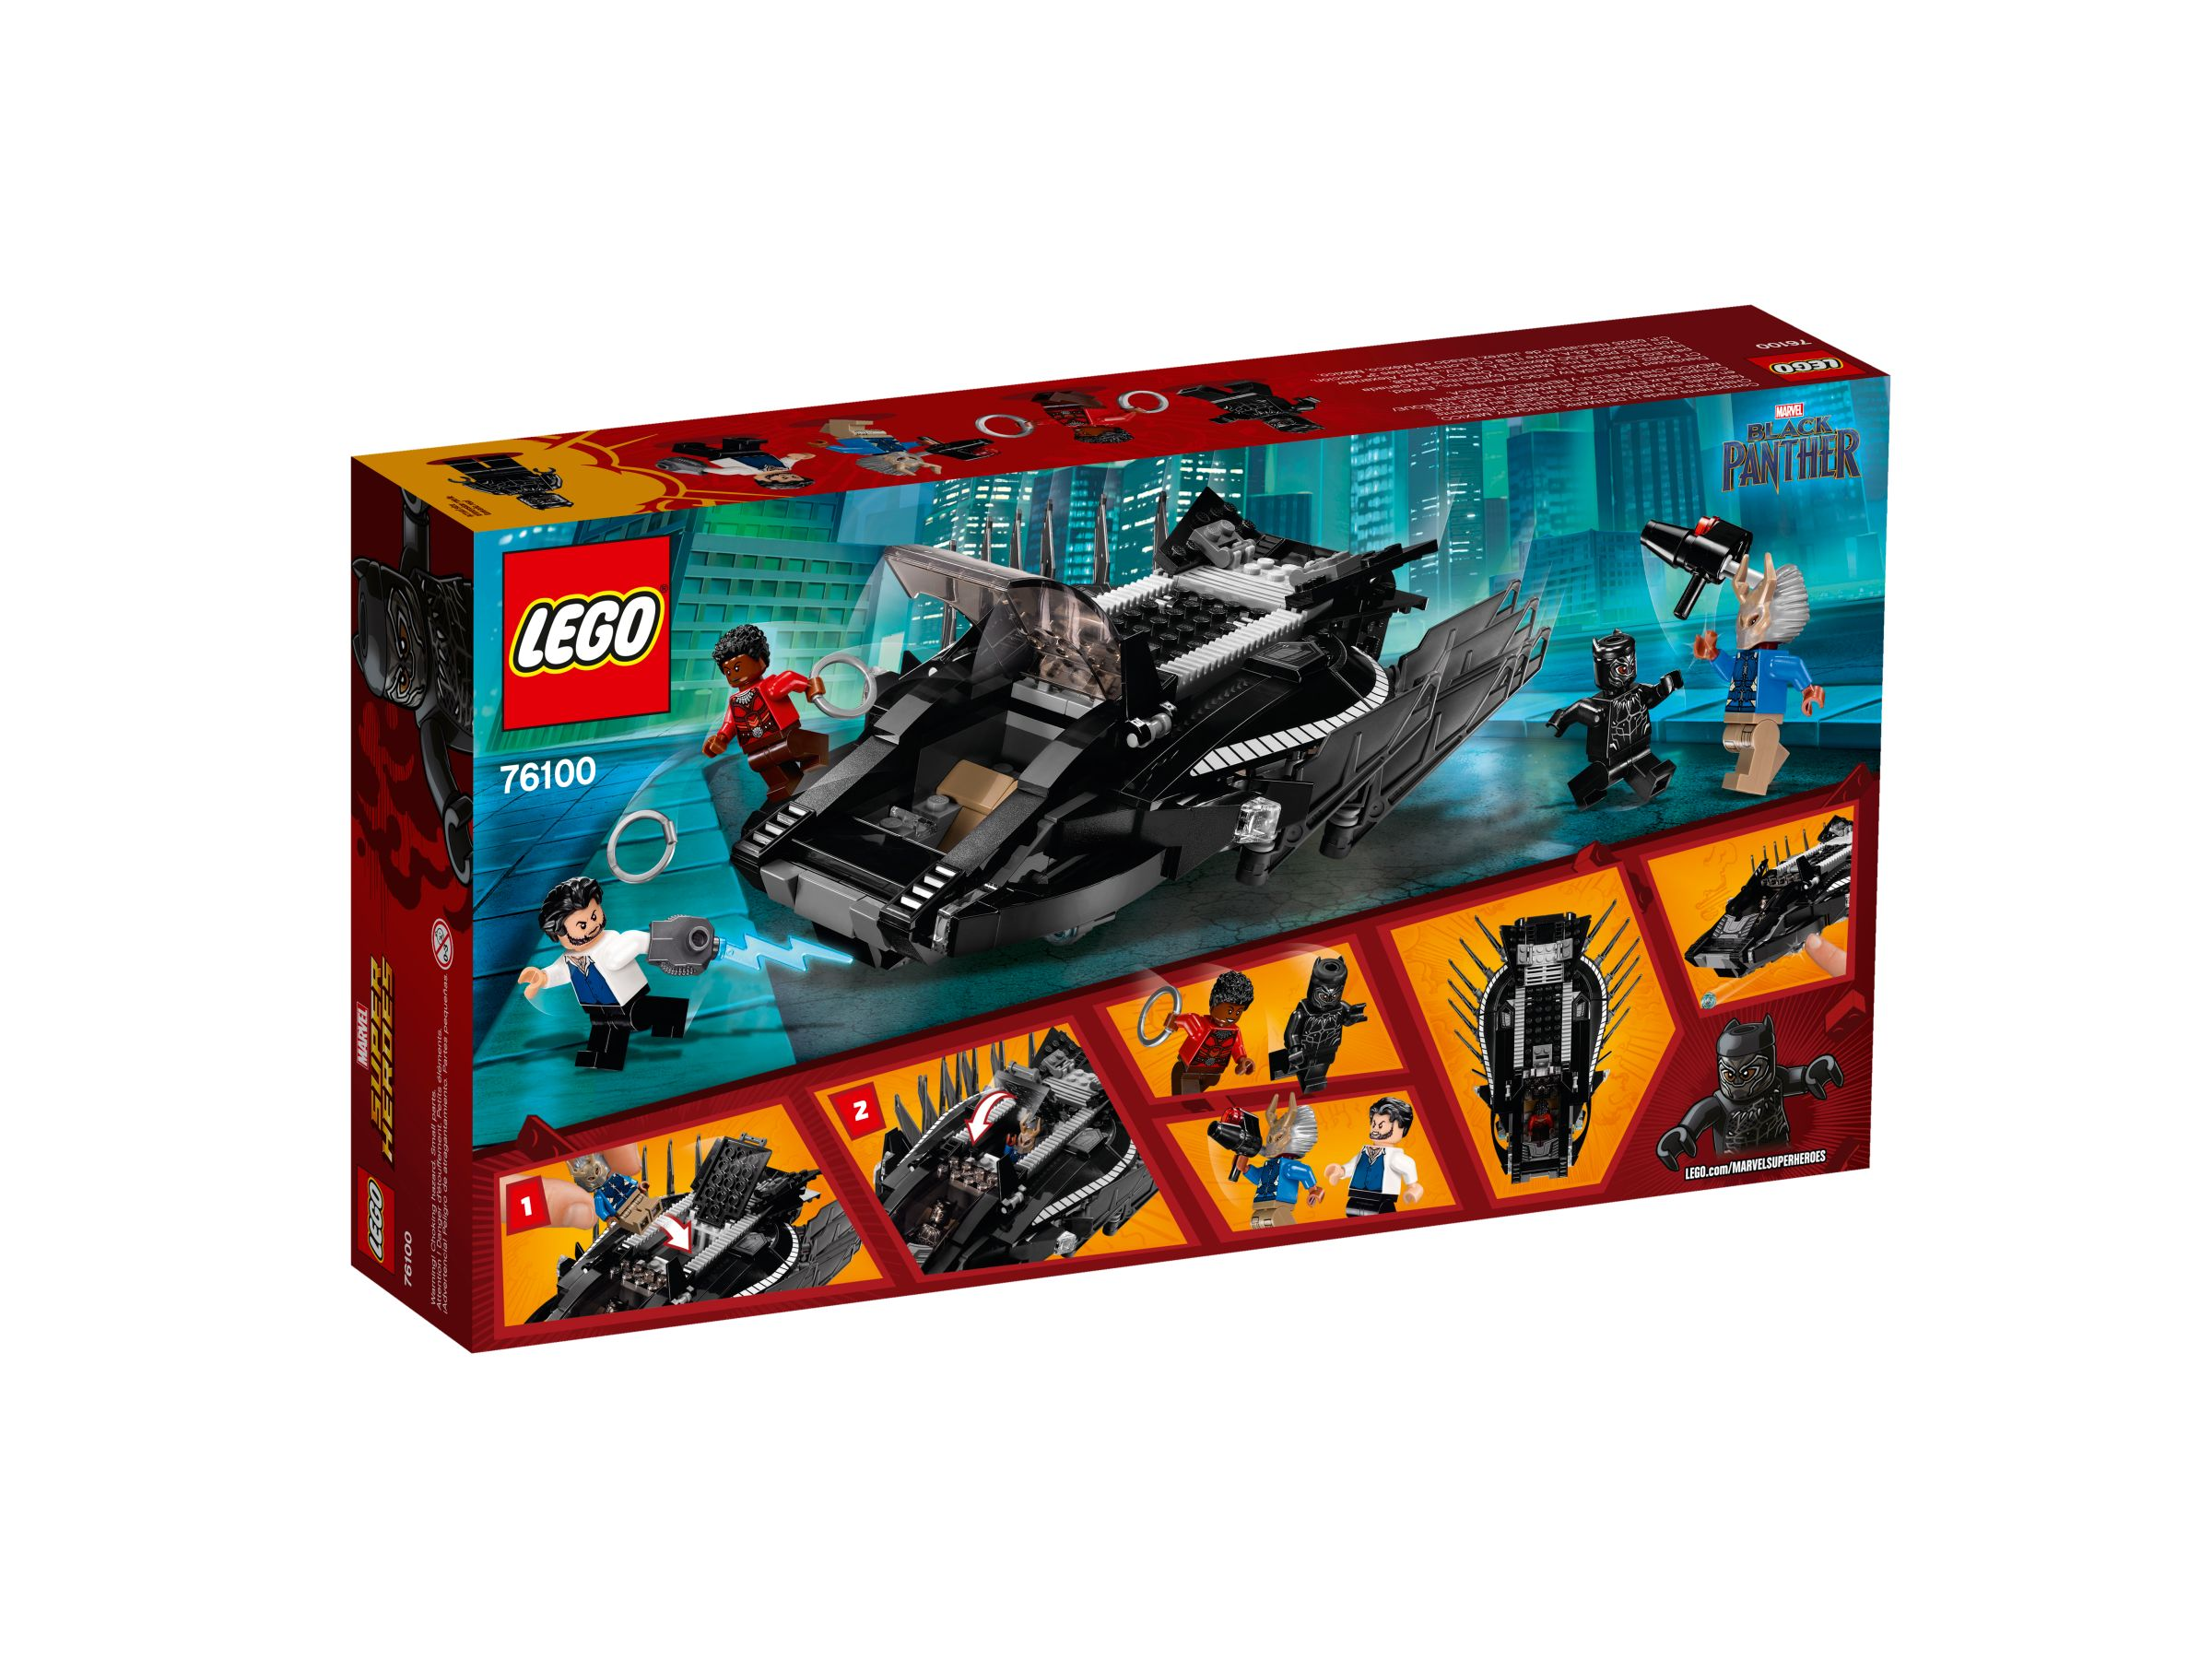 LEGO Super Heroes 76100 Royal Talon Attacke LEGO_76100_alt2.jpg